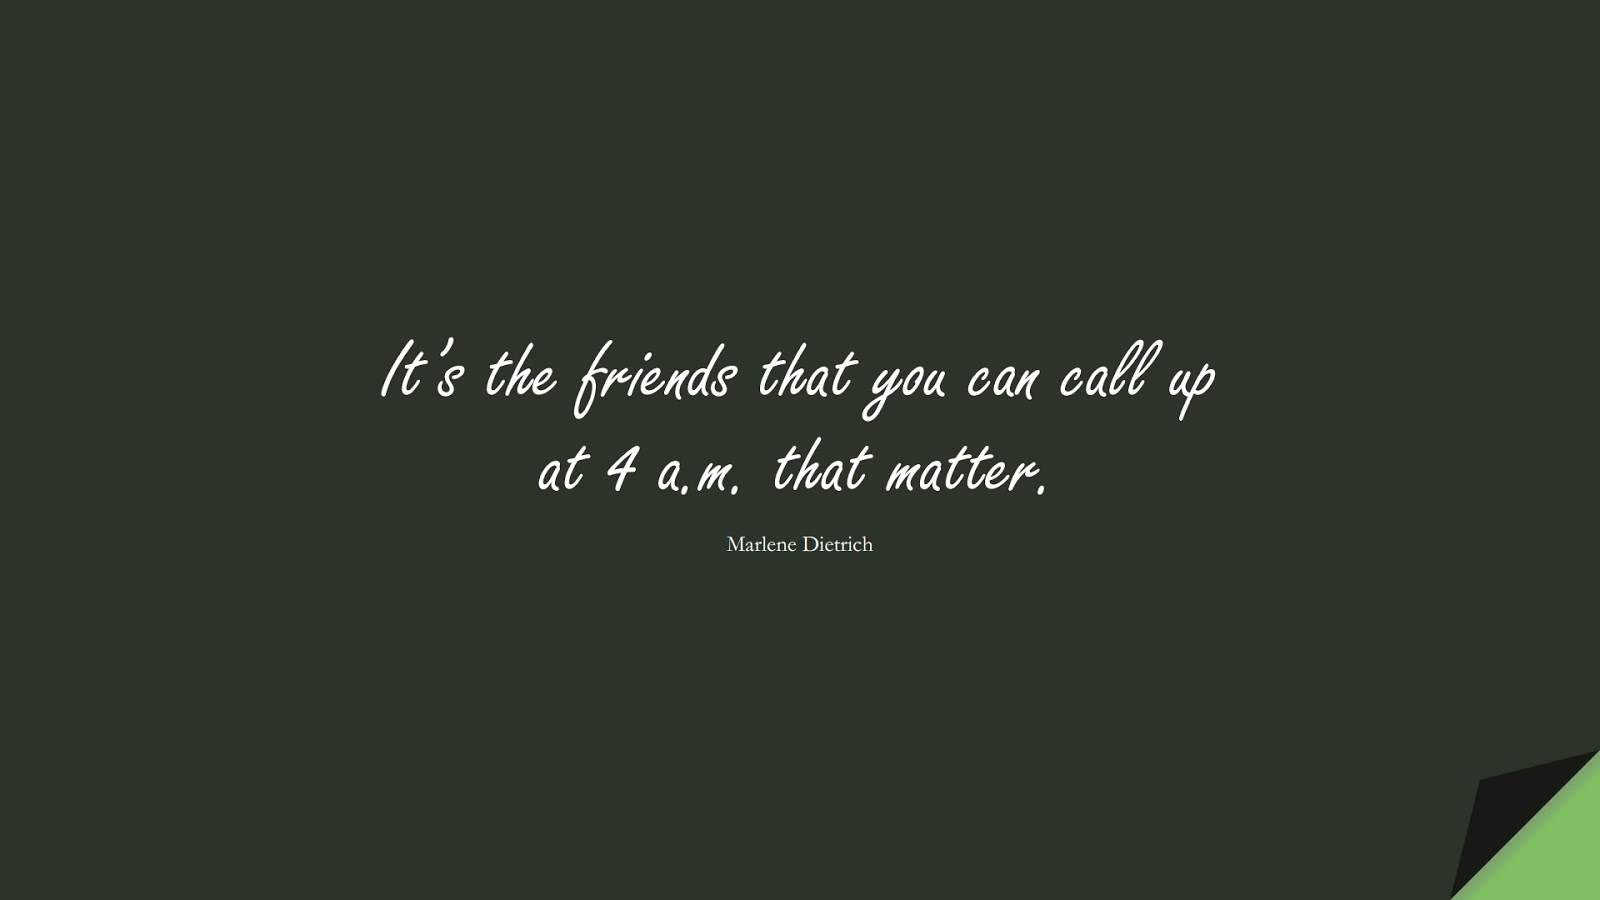 It's the friends that you can call up at 4 a.m. that matter. (Marlene Dietrich);  #FriendshipQuotes